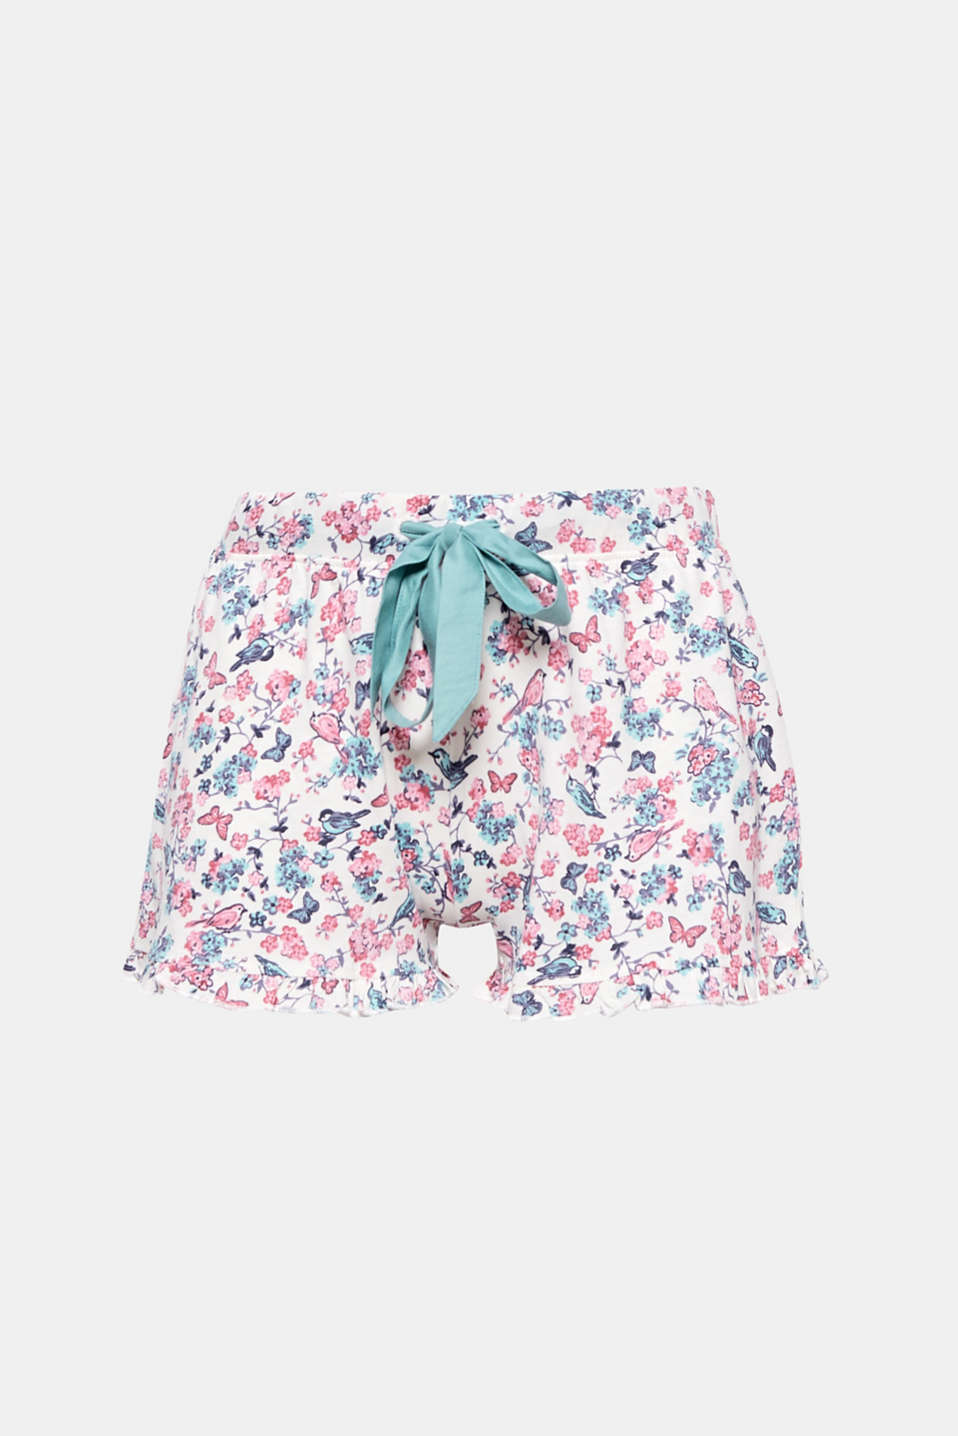 The combination of pretty frills and an all-over floral/bird print gives these shorts a feminine twist